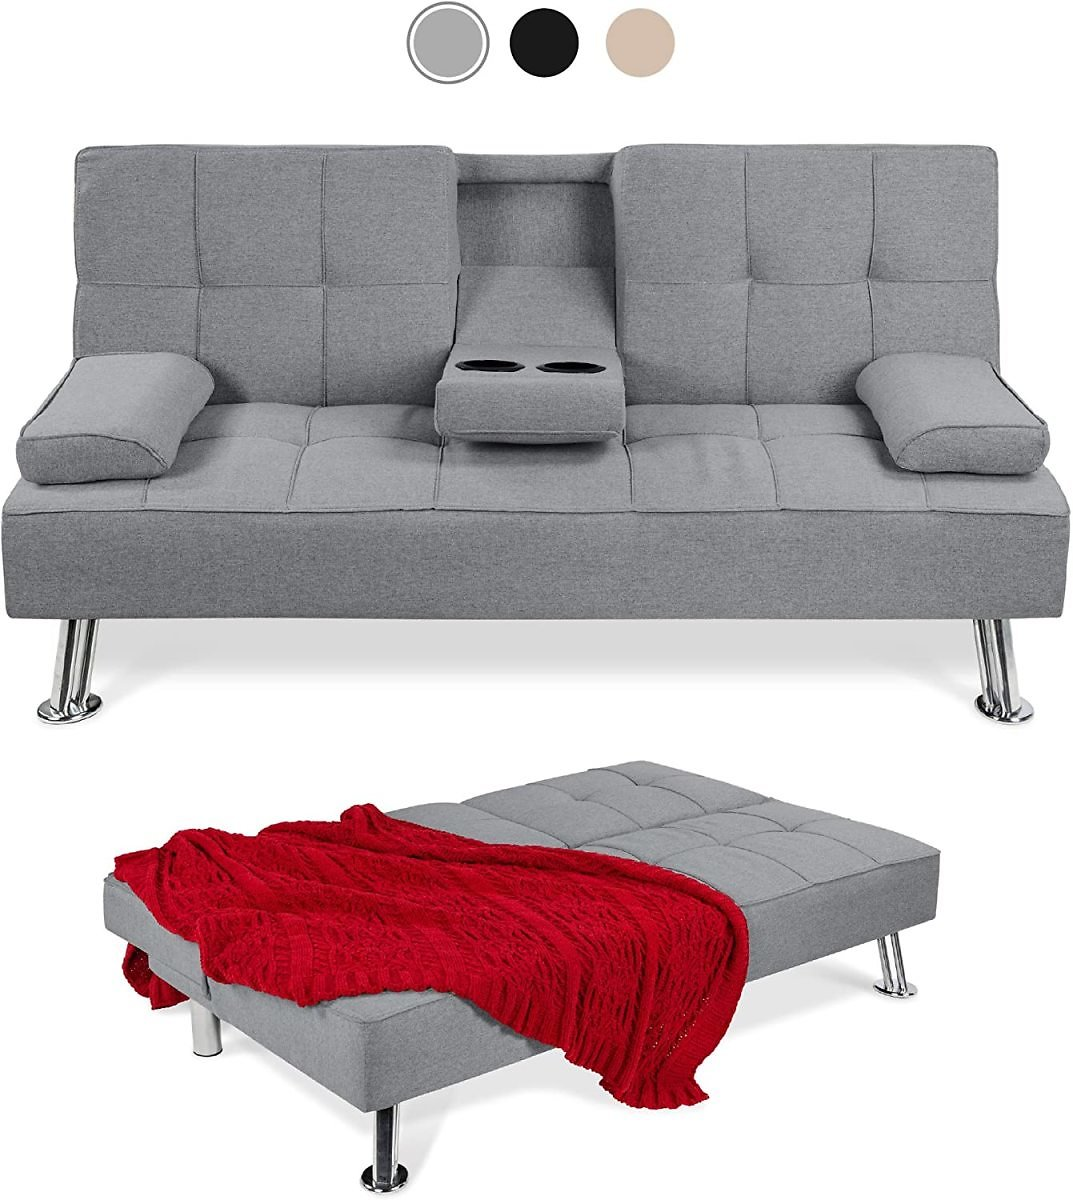 Linen Upholstered Modern Convertible Folding Futon Sofa Bed for Compact Living Space, Removable Armrests, Metal Legs